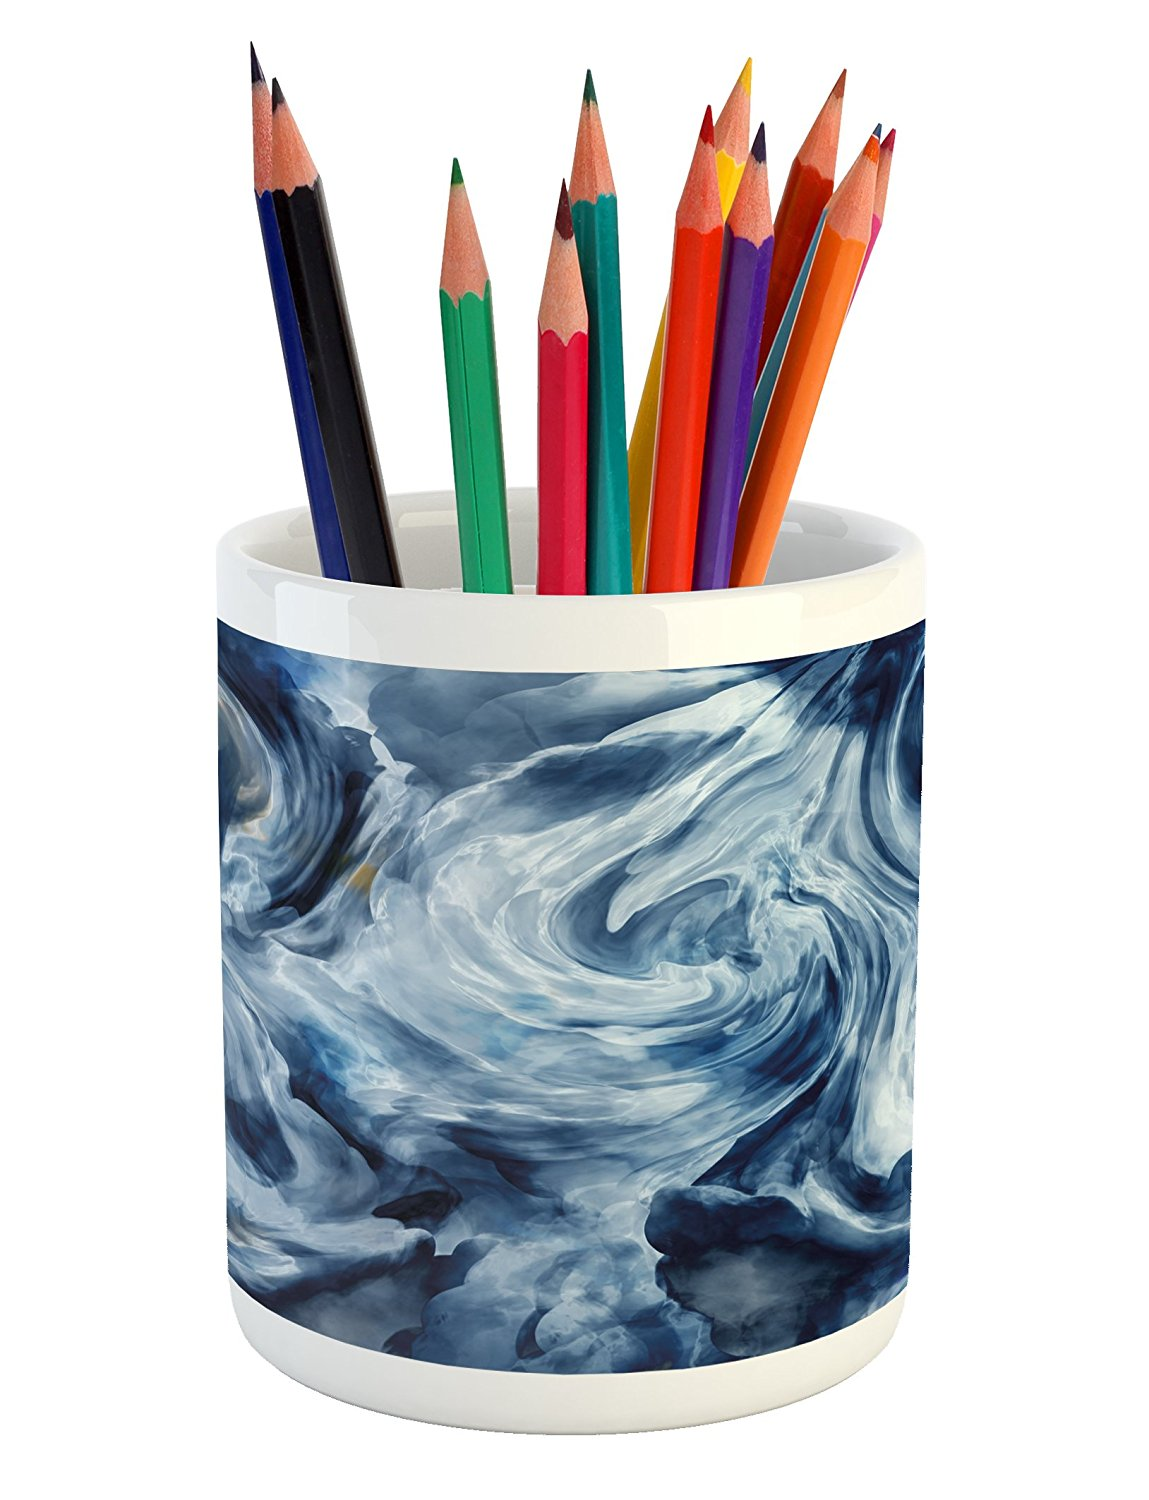 Marble Pencil Pen Holder by Lunarable, Grunge Stormy Murky Color Shades Motif Background with Blurry Effects Image, Printed Ceramic Pencil Pen Holder for Desk Office Accessory, Dark and Pale Blue